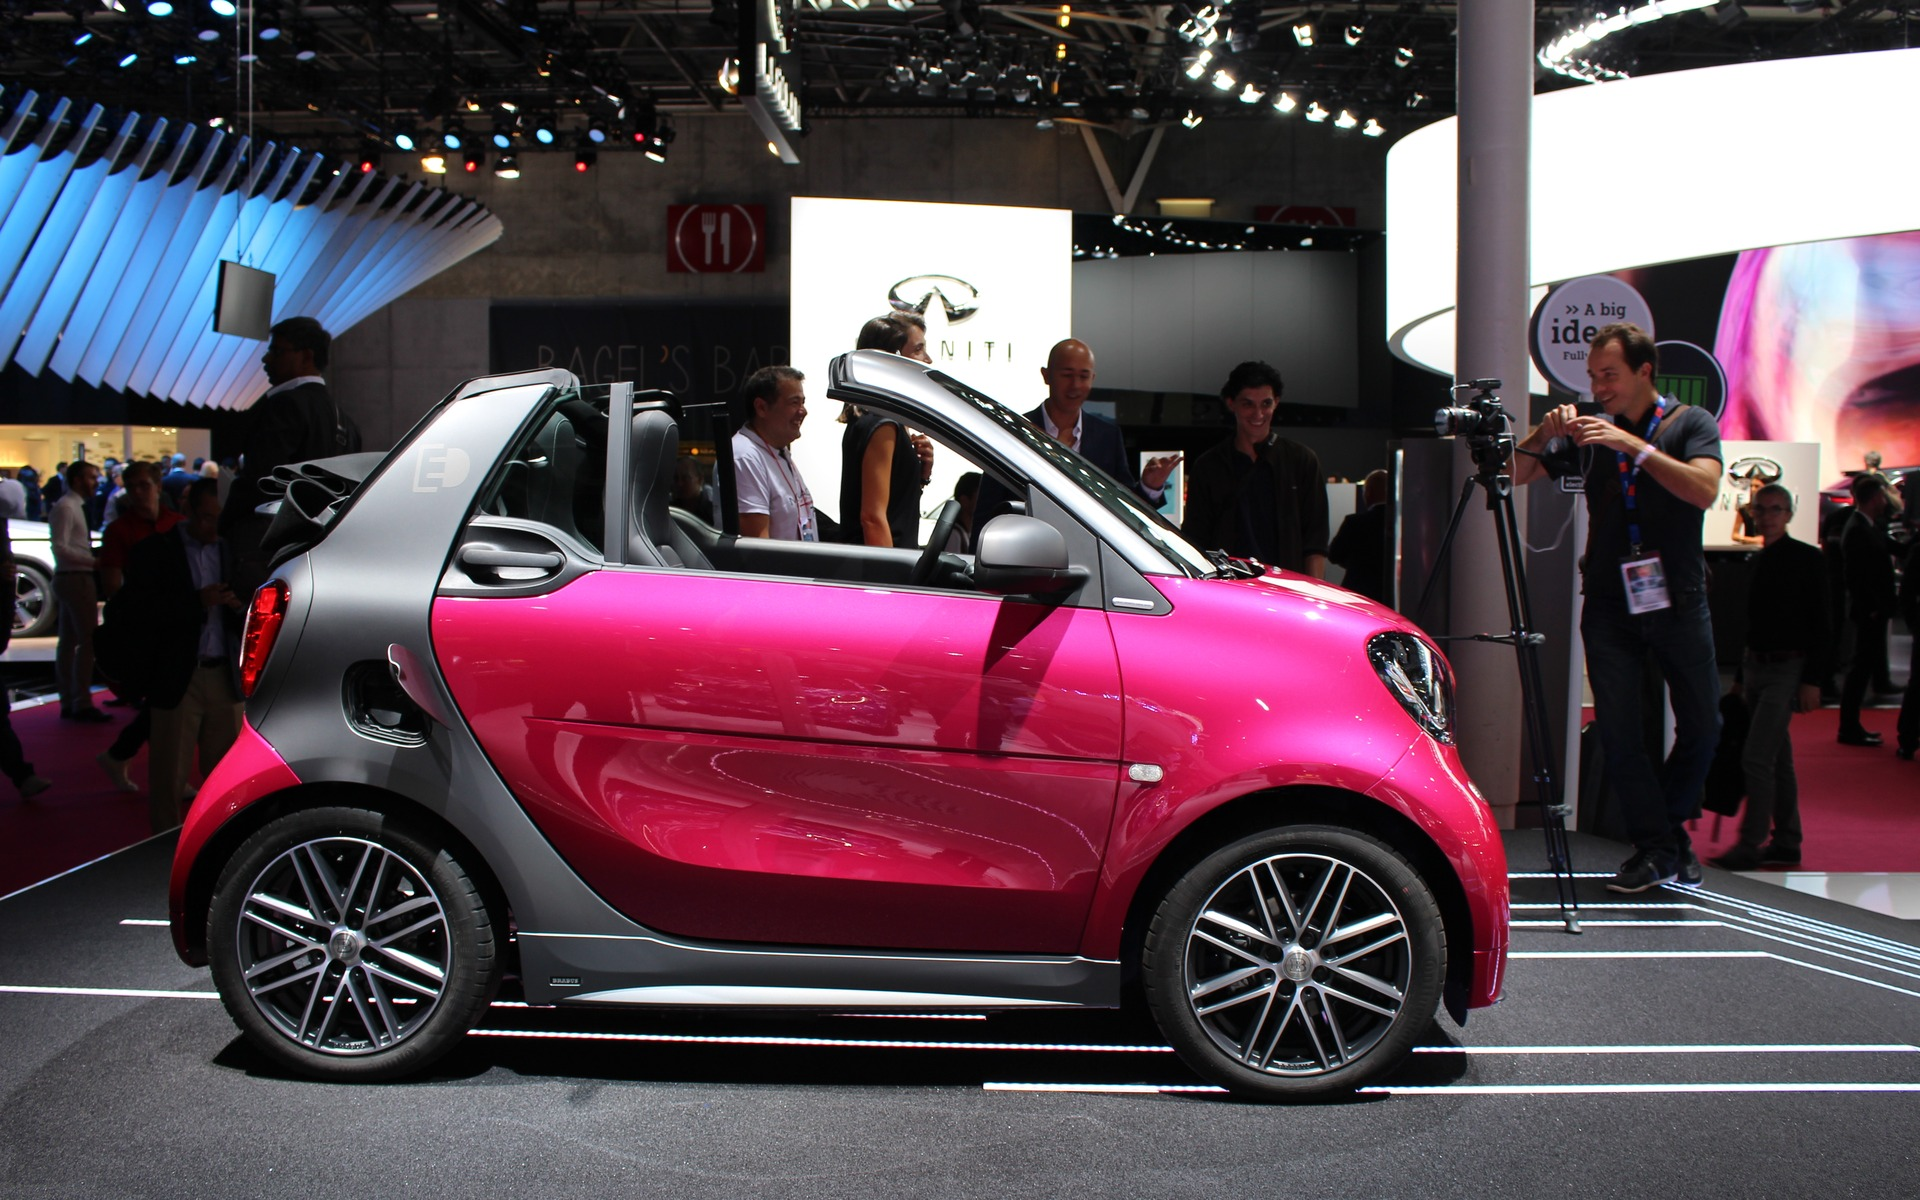 2017 smart fortwo electric drive return of the electric city car the car guide. Black Bedroom Furniture Sets. Home Design Ideas